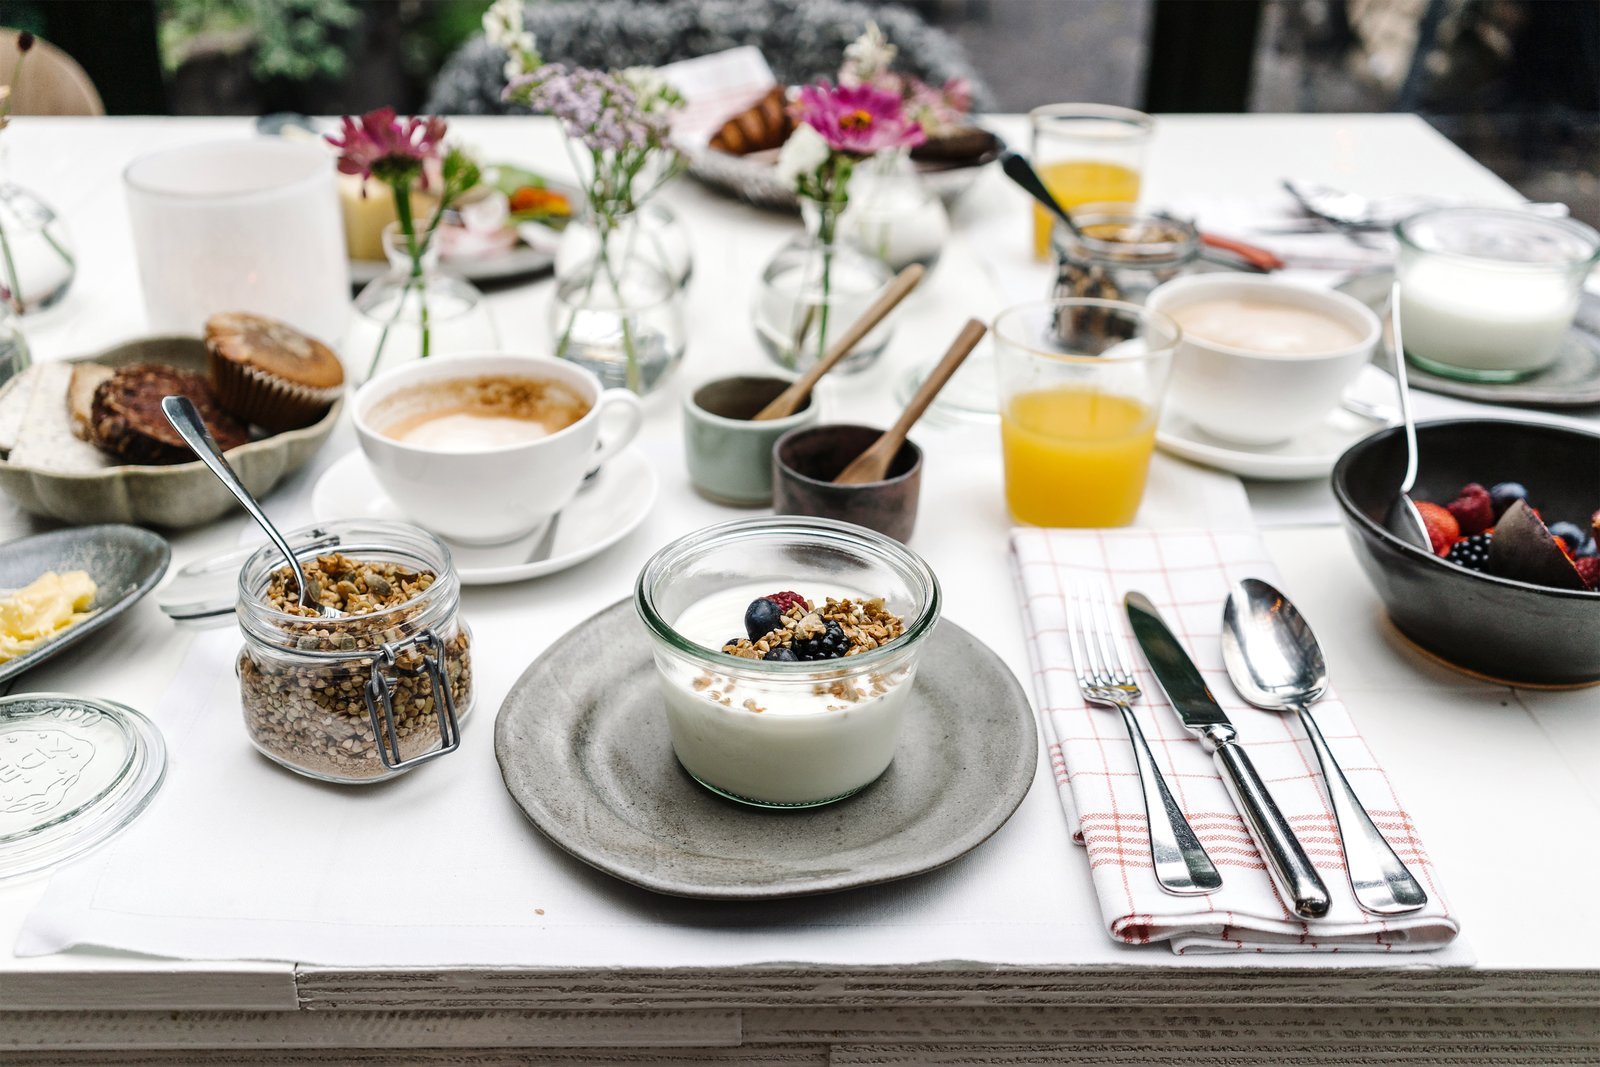 A seasonal complimentary breakfast is served each day, which includes fresh yogurt, house-made granola, pastries, avocado toast, and cheese.  Photo 9 of 13 in A Visual Journey Through Stockholm's Hotel Ett Hem